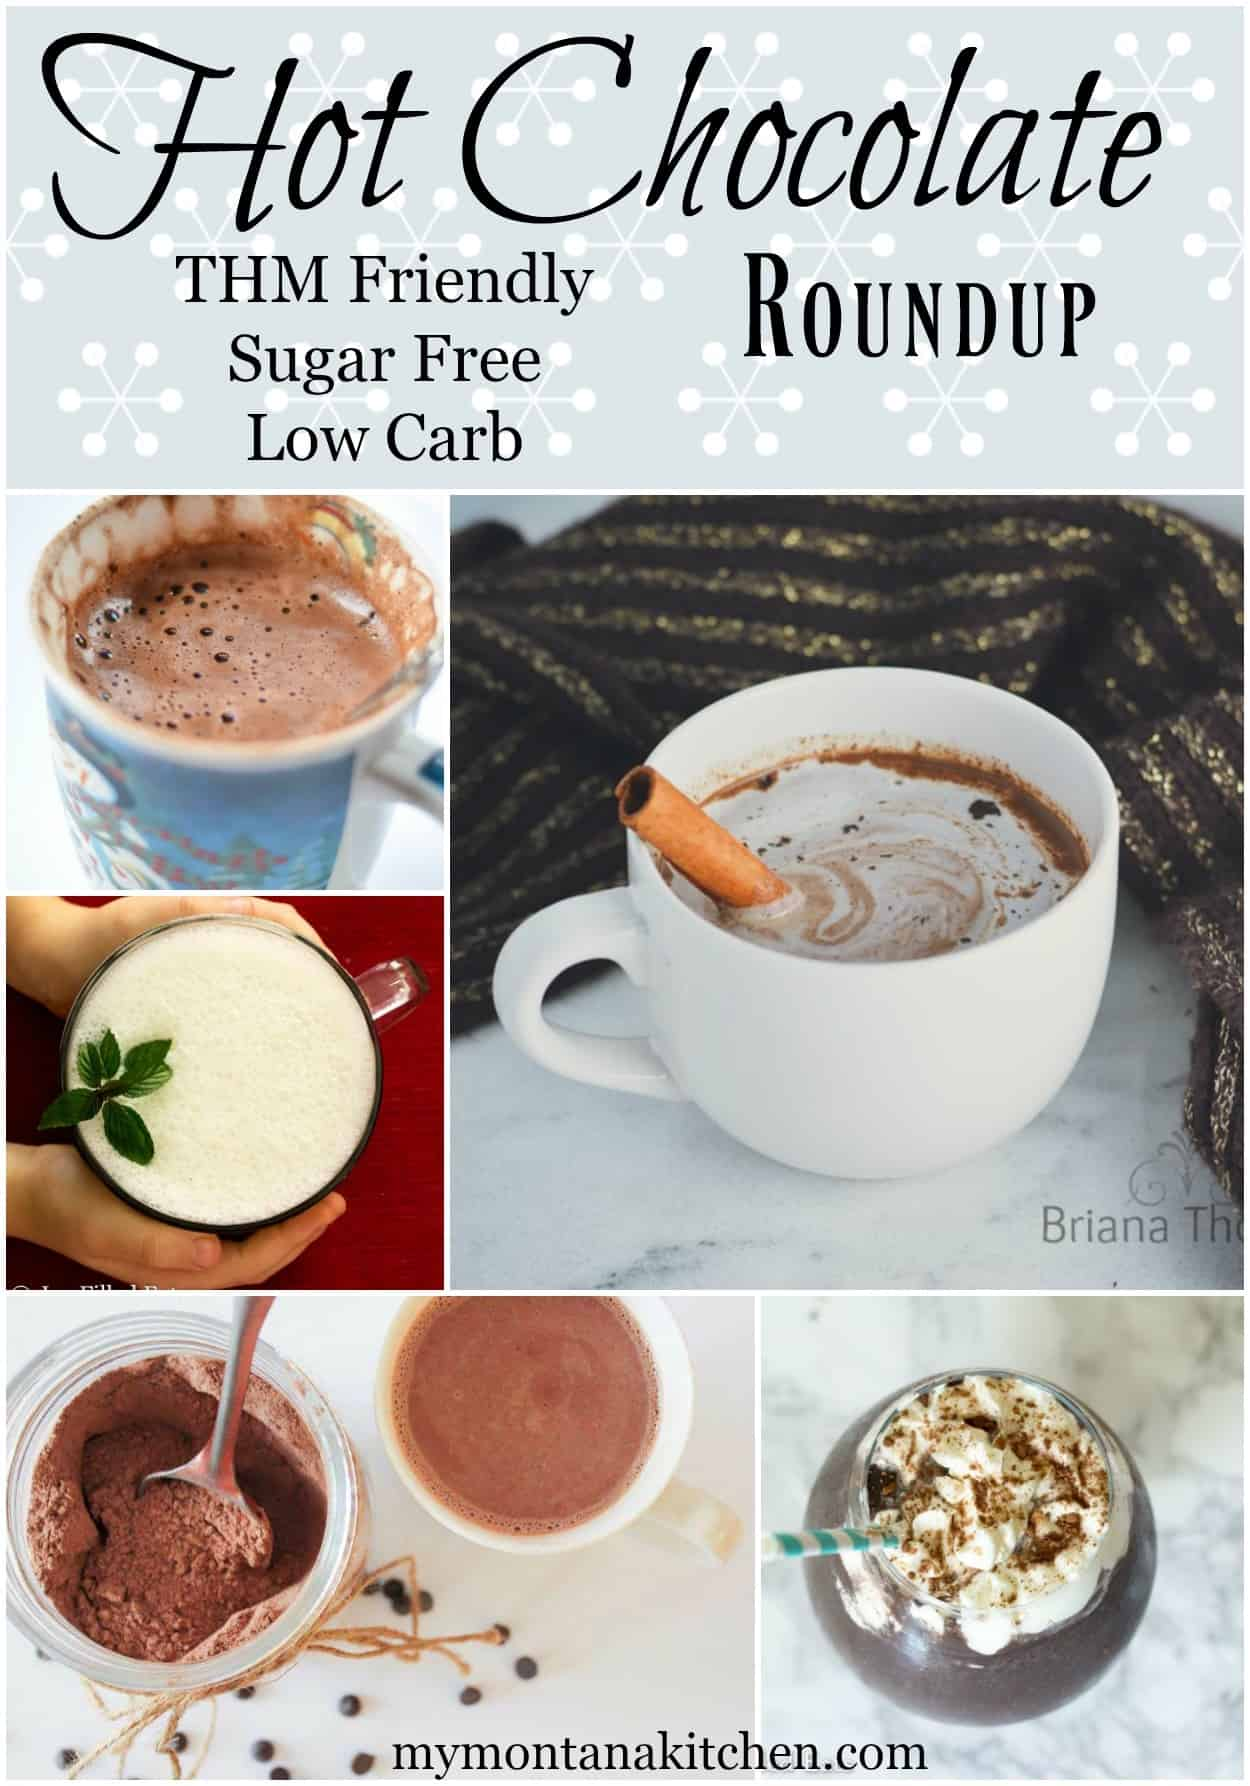 Low Carb, Sugar Free Hot Chocolate Roundup - My Montana Kitchen